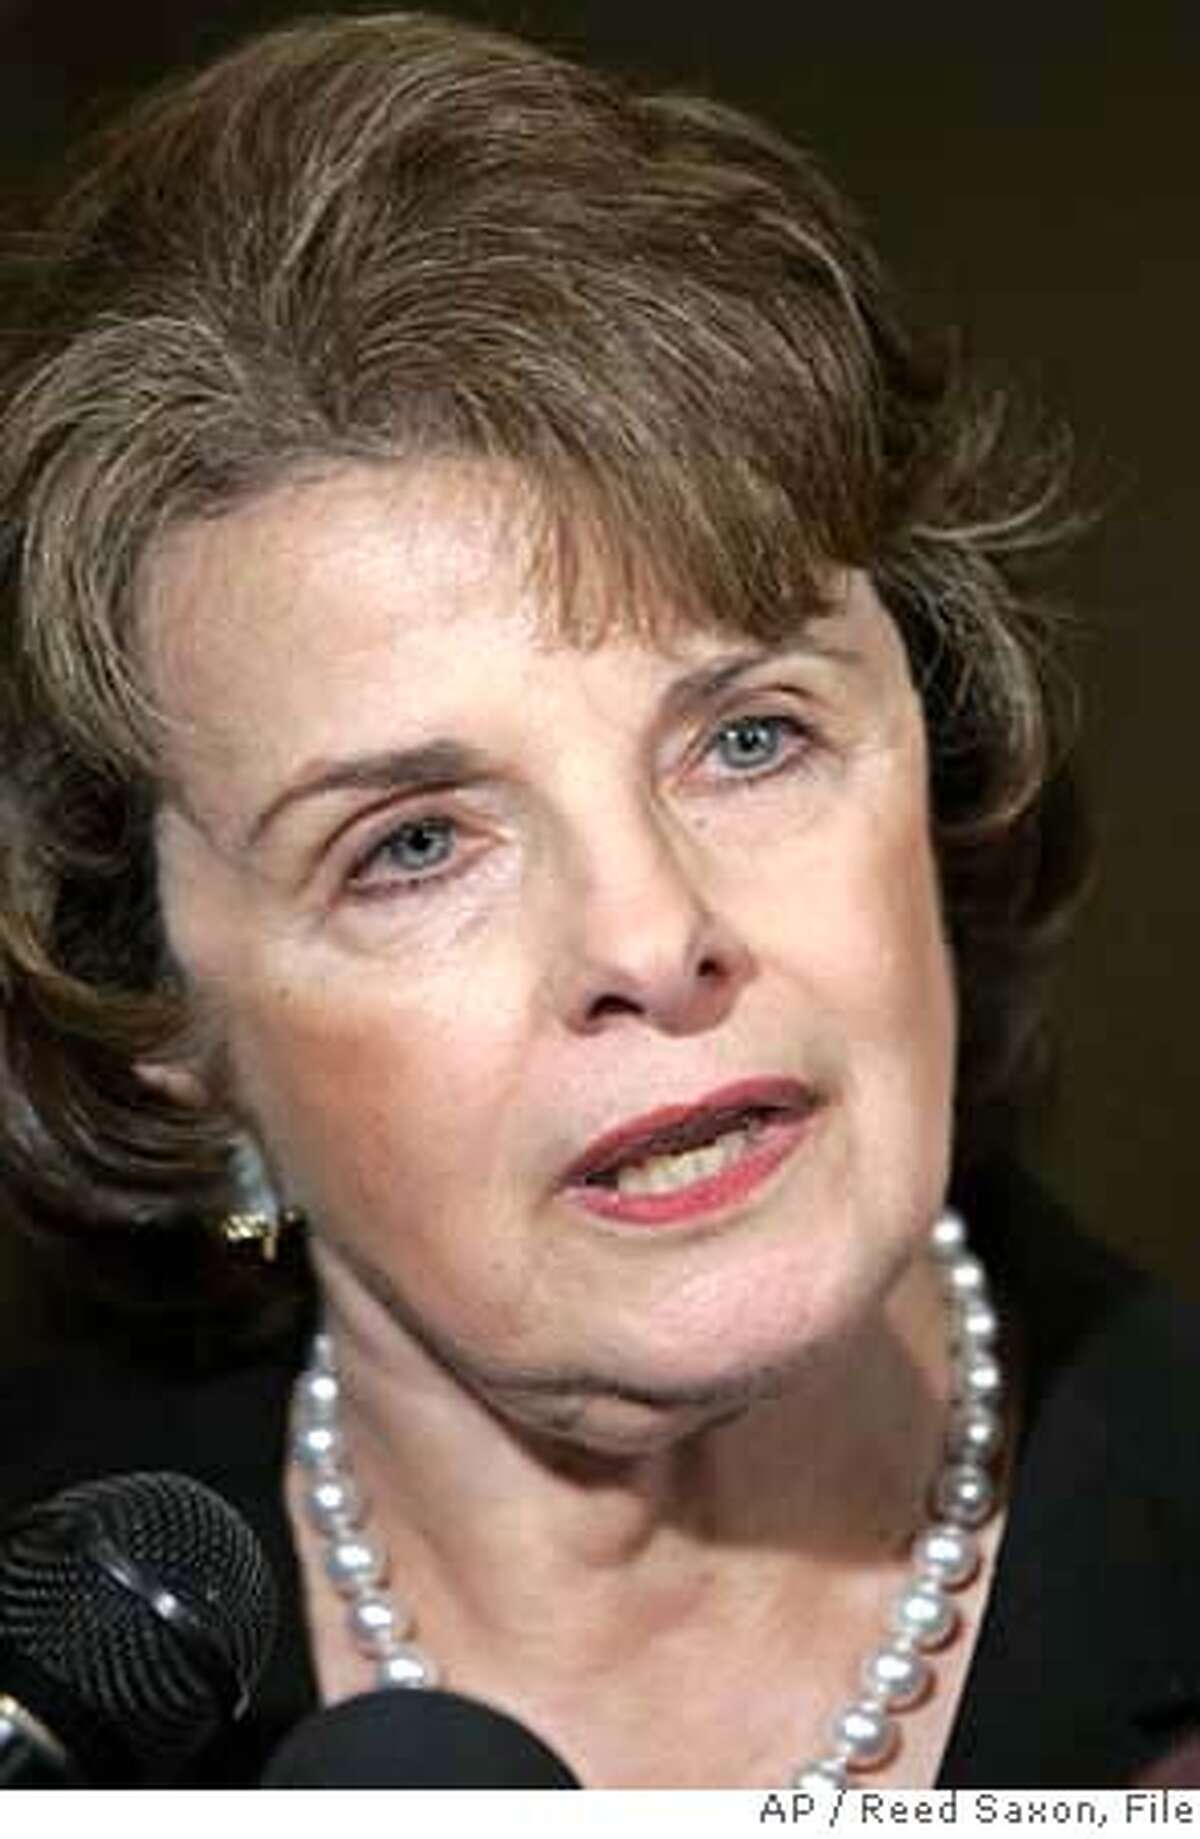 ** FILE ** U.S. Sen. Dianne Feinstein, D-Calif., talks with reporters in Los Angeles in this Wednesday, Oct. 25, 2006 file photo. Feinstein is cautioning Republicans against blocking a vote Monday, Feb. 5, 2007 on a resolution opposing President Bush's troop increase in Iraq, saying it would be a